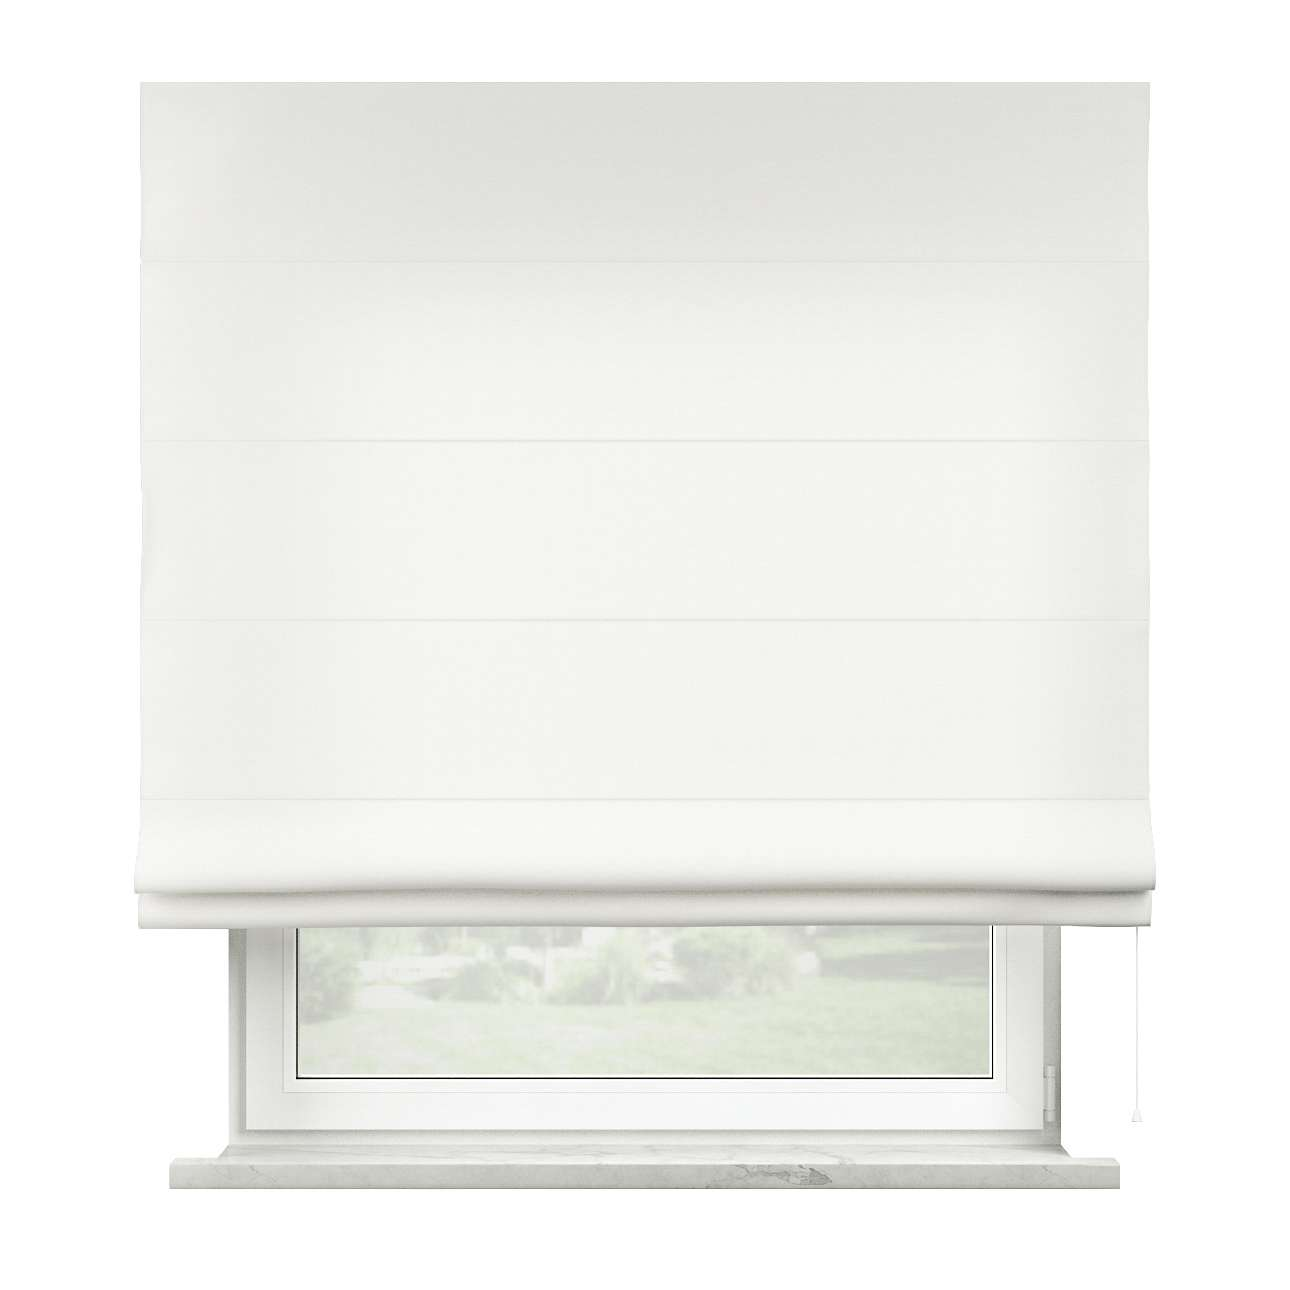 Billie roman blind in collection Cotton Story, fabric: 702-34